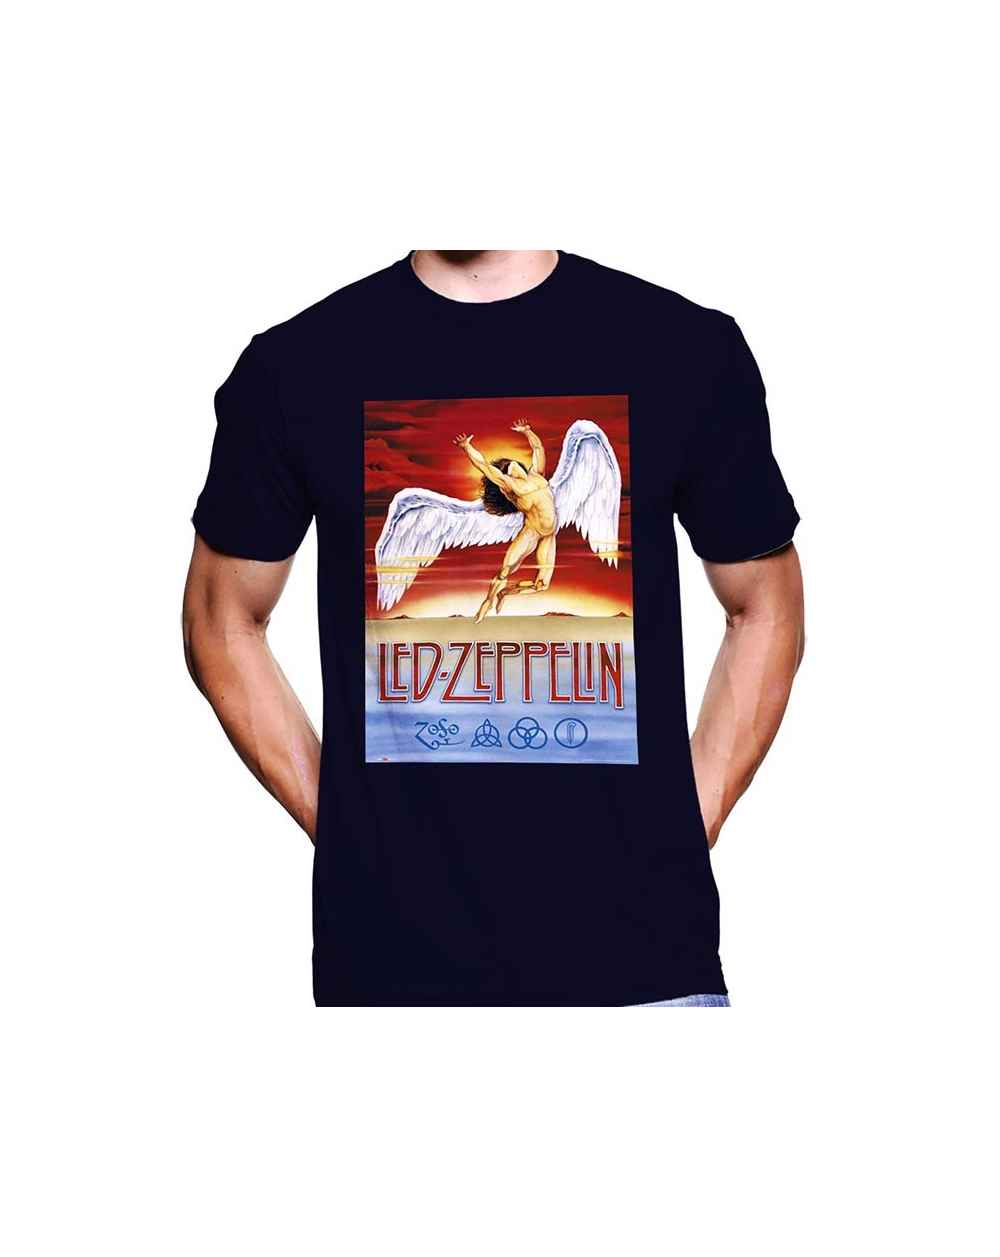 Camiseta Estampada Hombre Led Zeppelin Angel